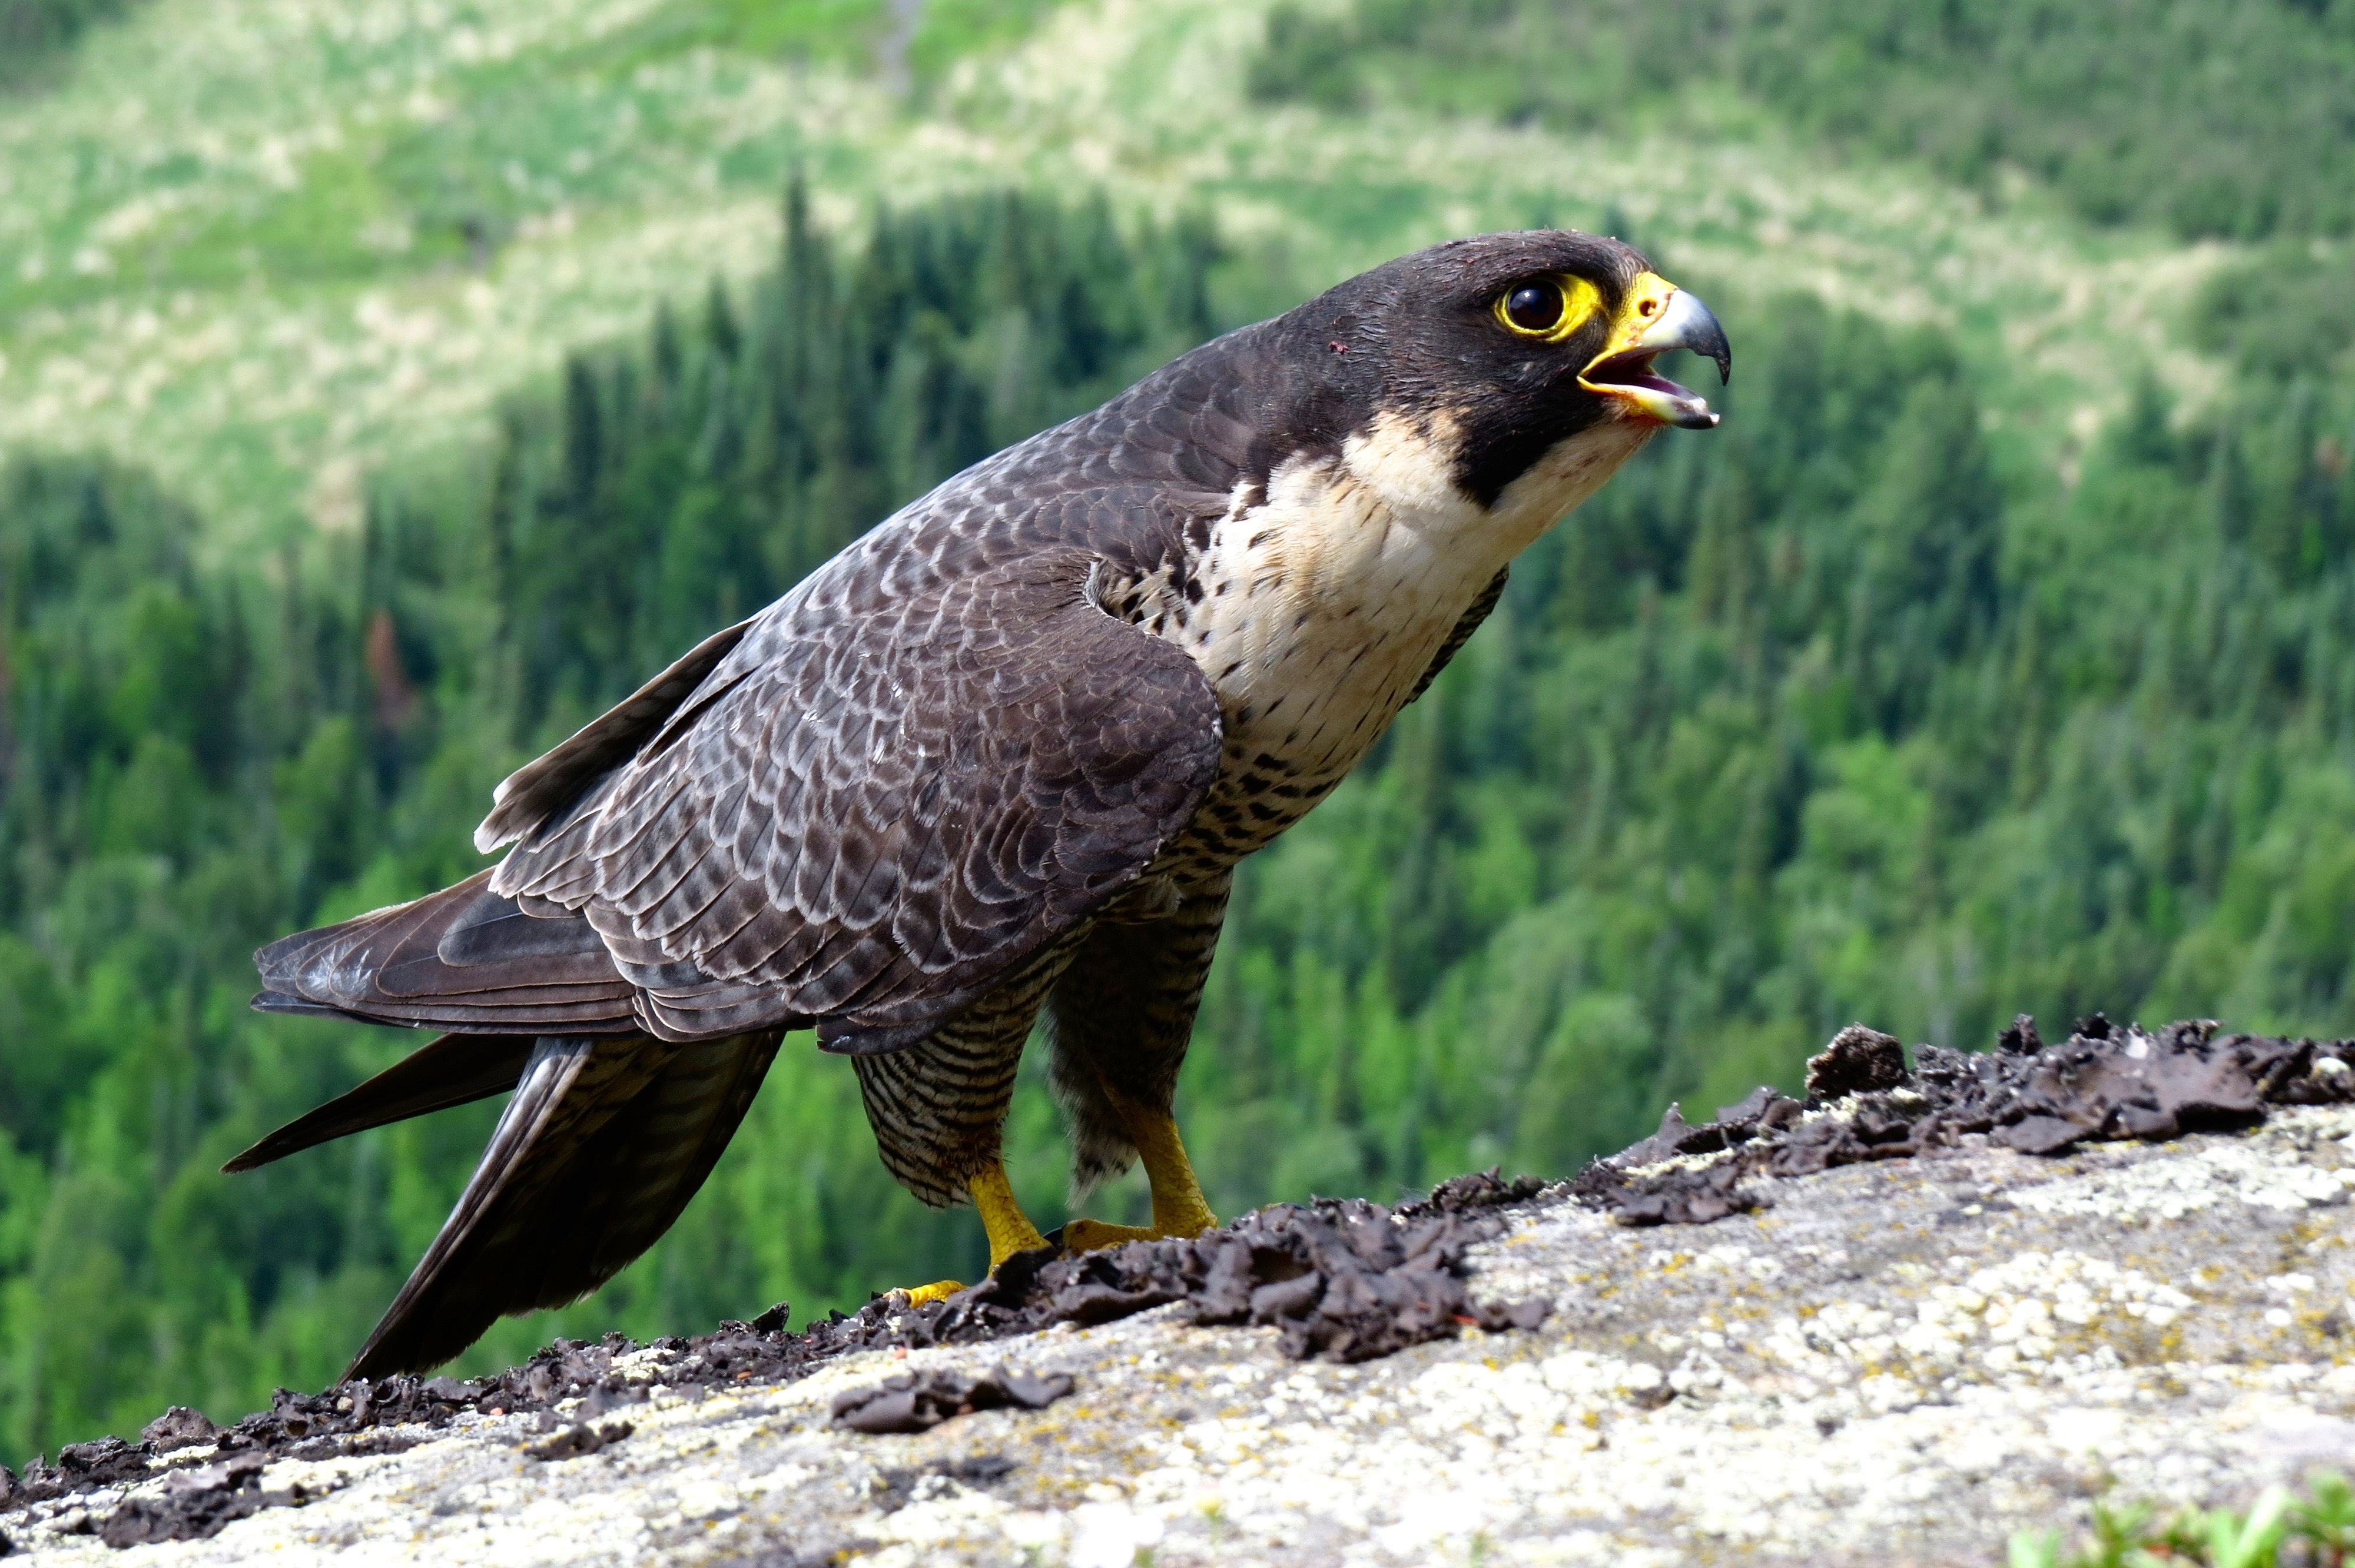 Peregrine falcon perched on branch overlooking forest